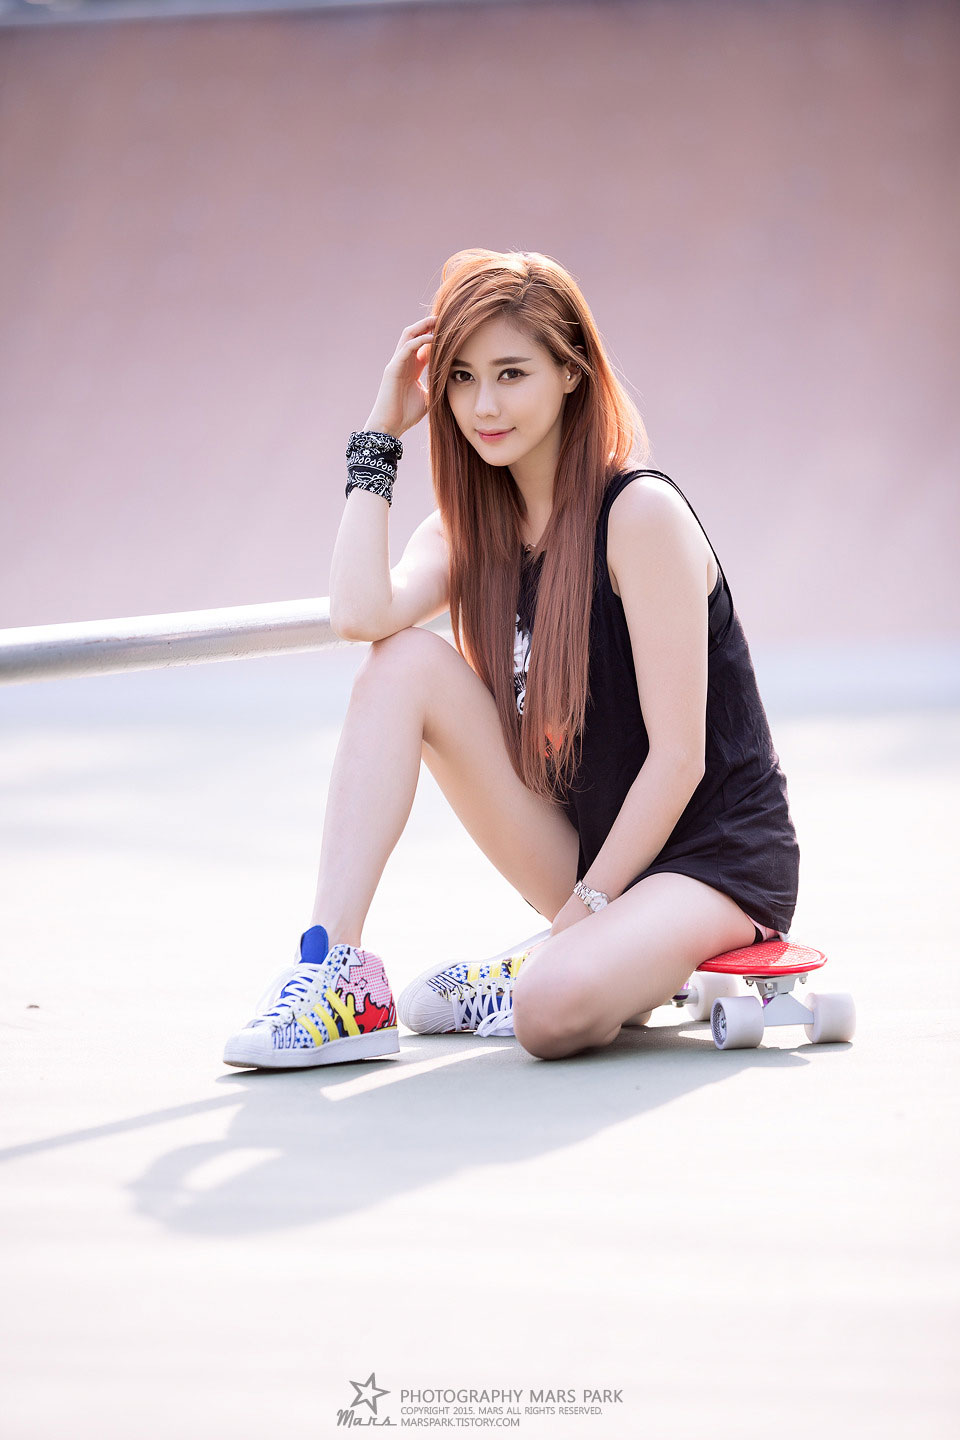 Korean model Kim Ha Yul skatepark photoshoot